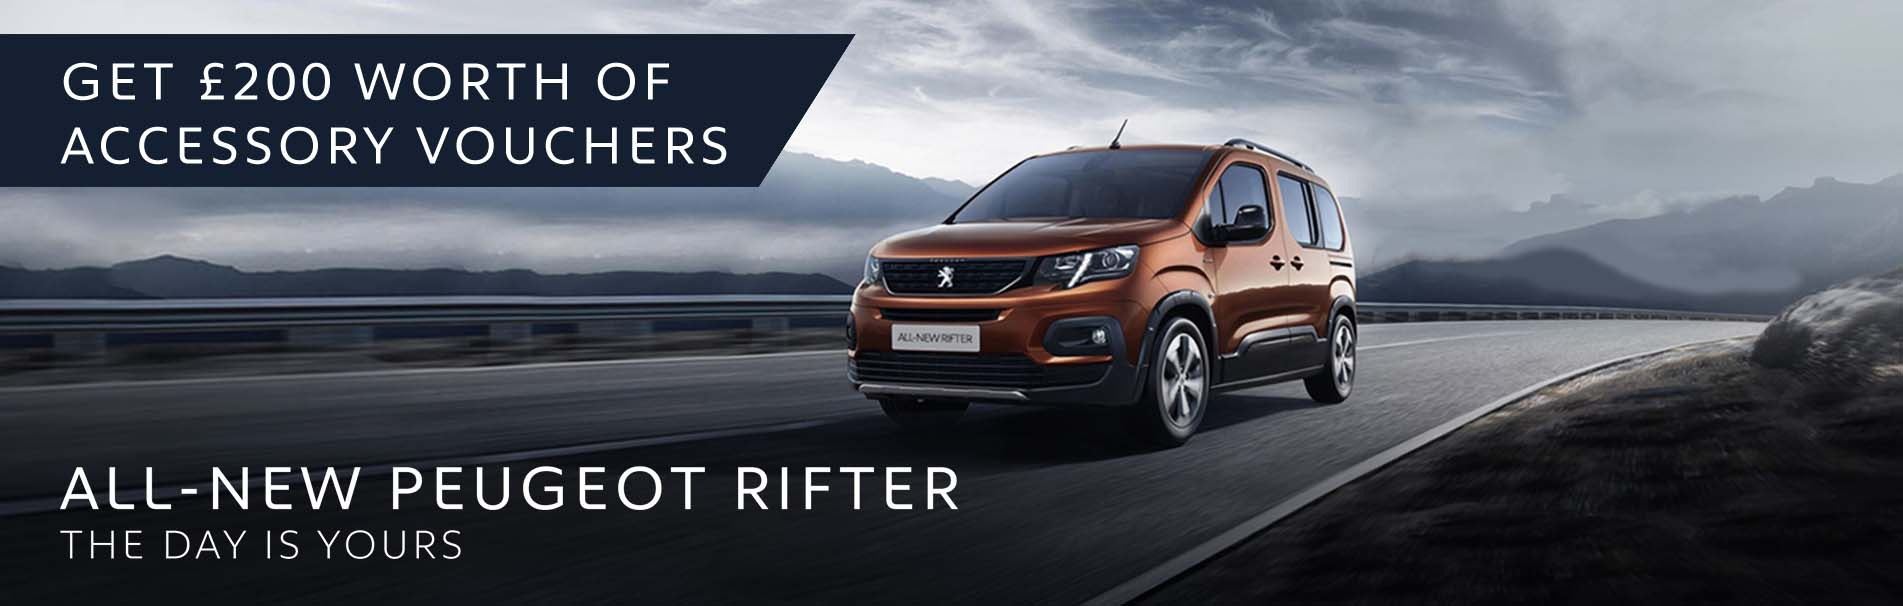 peugeot-rifter-accessories-bonus-new-car-offer-sli